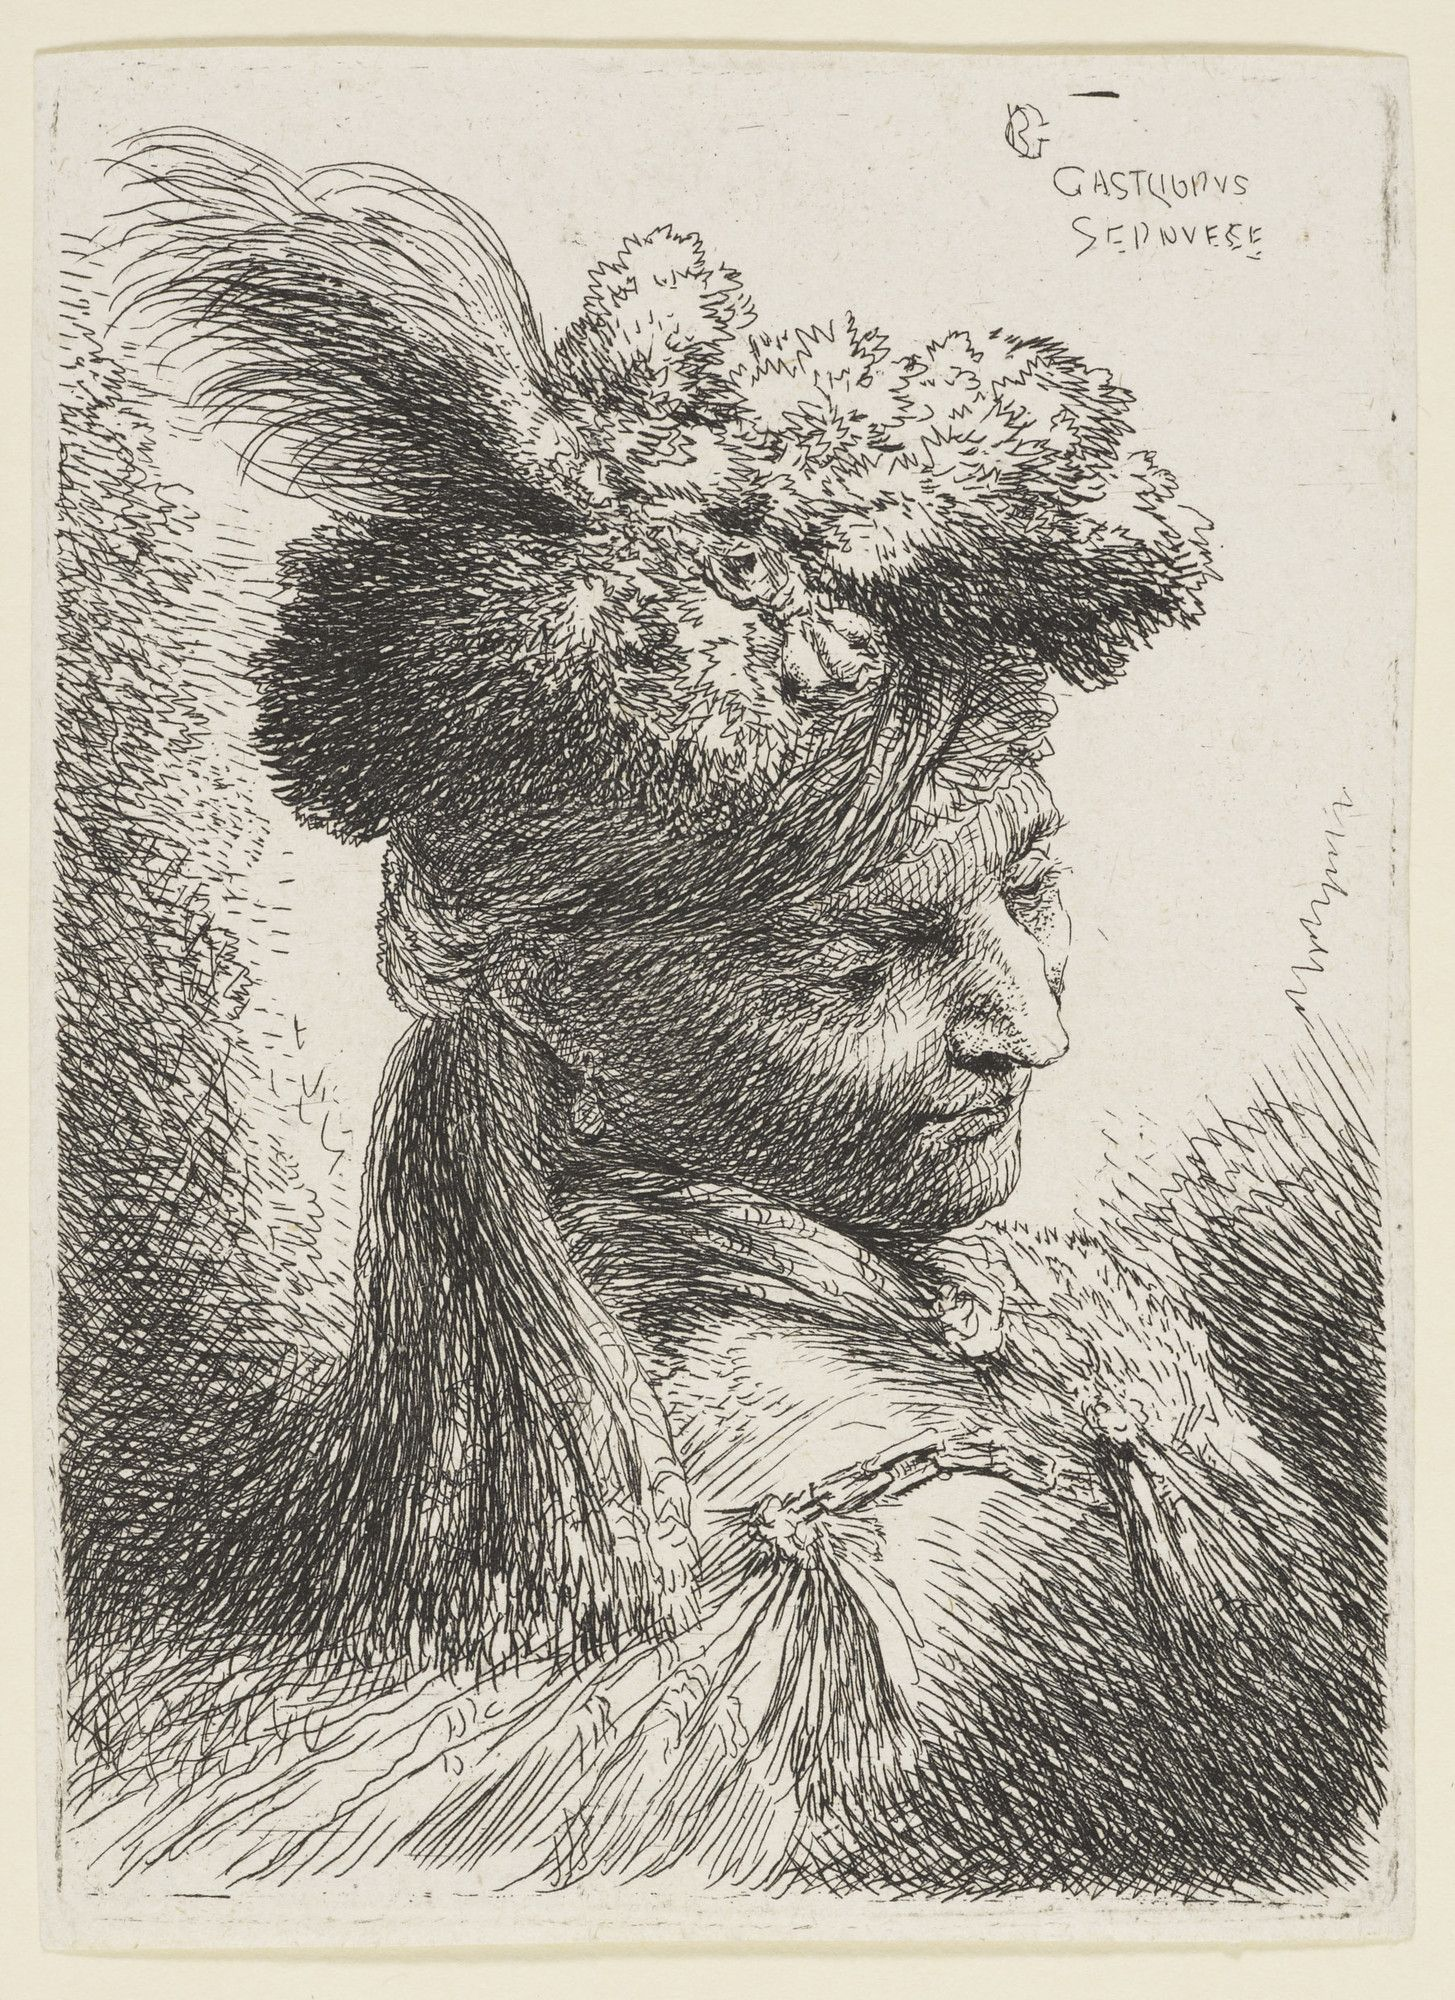 Giovanni Castiglione (1609-64). A man in a plumed headdress, c. 1645-50,  Etching, 10.8 x 8.0 cm. Royal Collection Trust.